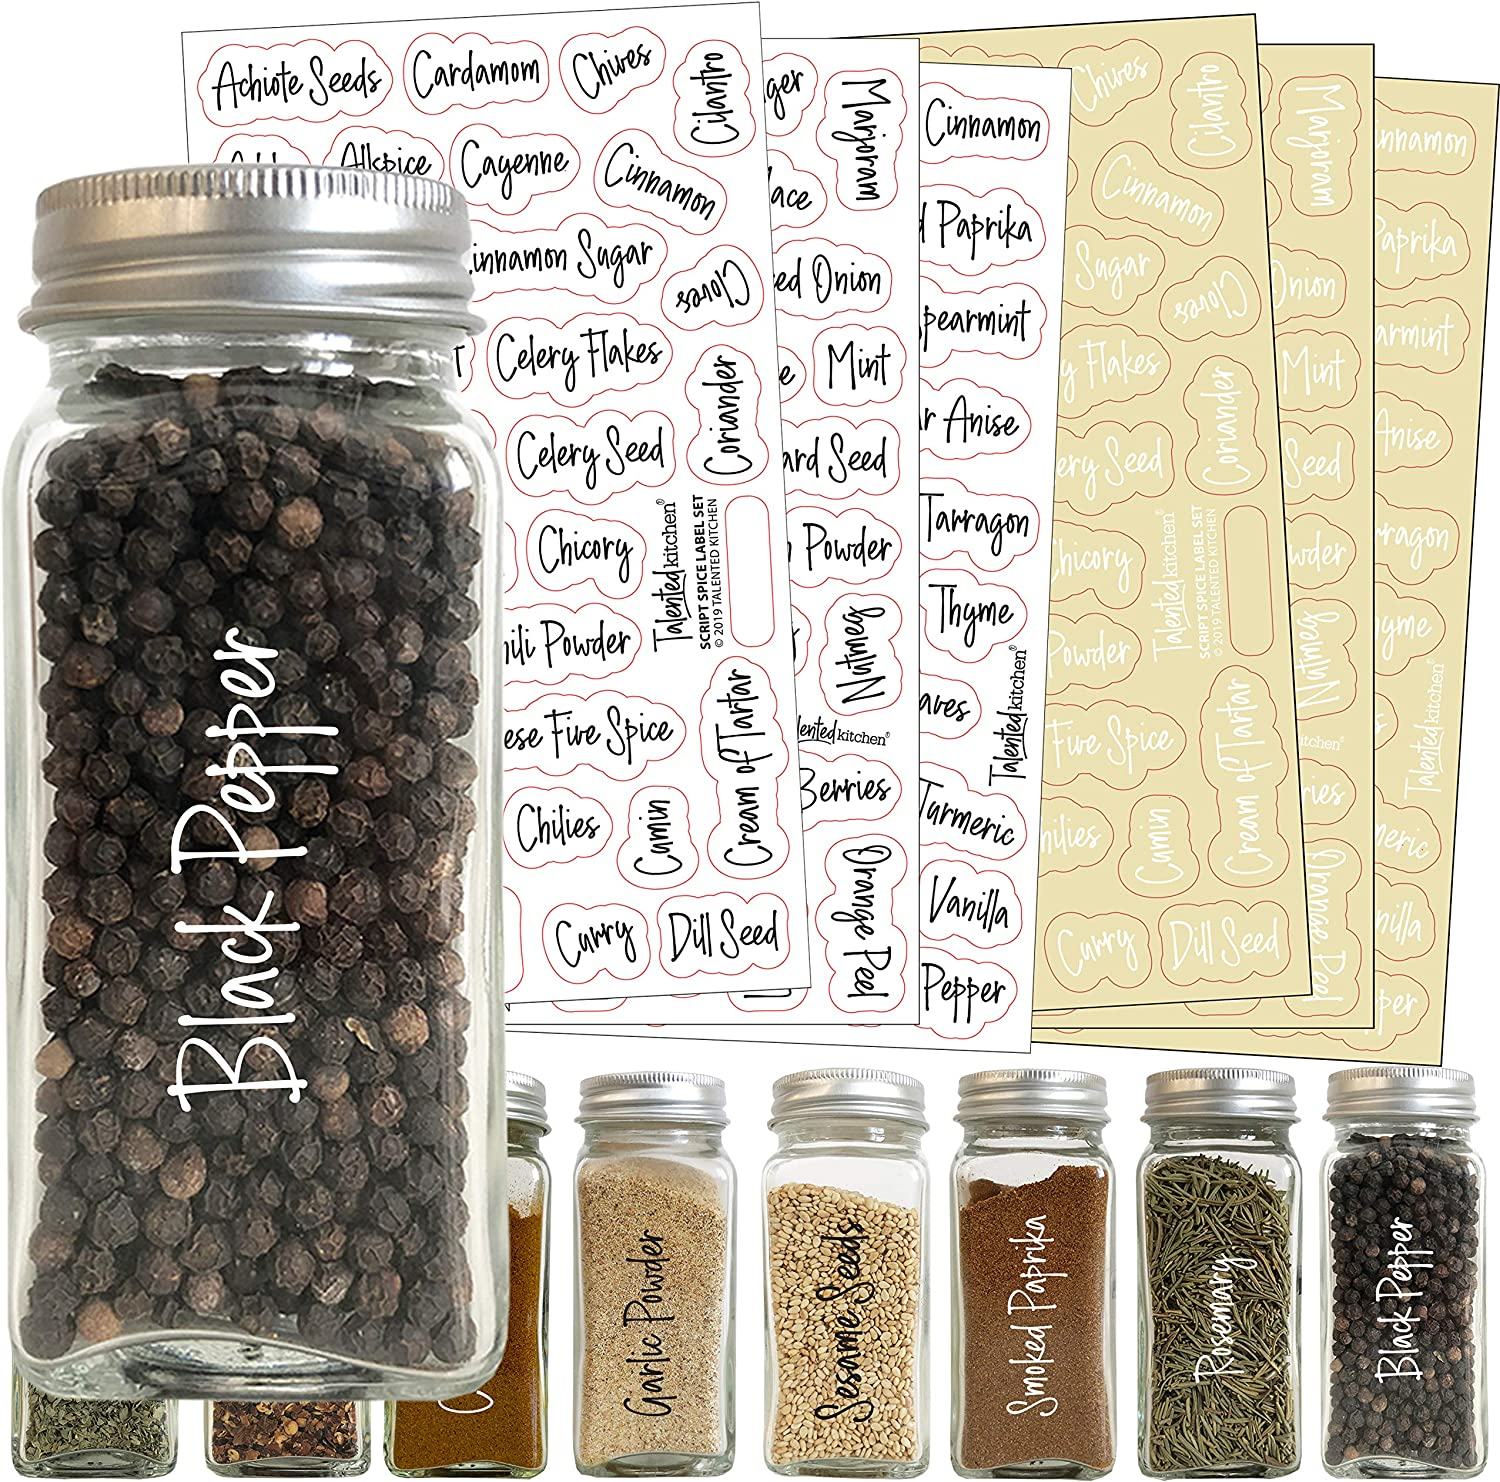 Talented Kitchen 200 Script Spice Label Combo – 200 Black & White Preprinted Labels: Most Common Spice Names in 2 Letter Colors on Clear Stickers. Waterproof, Spice Jar Labels Spice Rack Organization